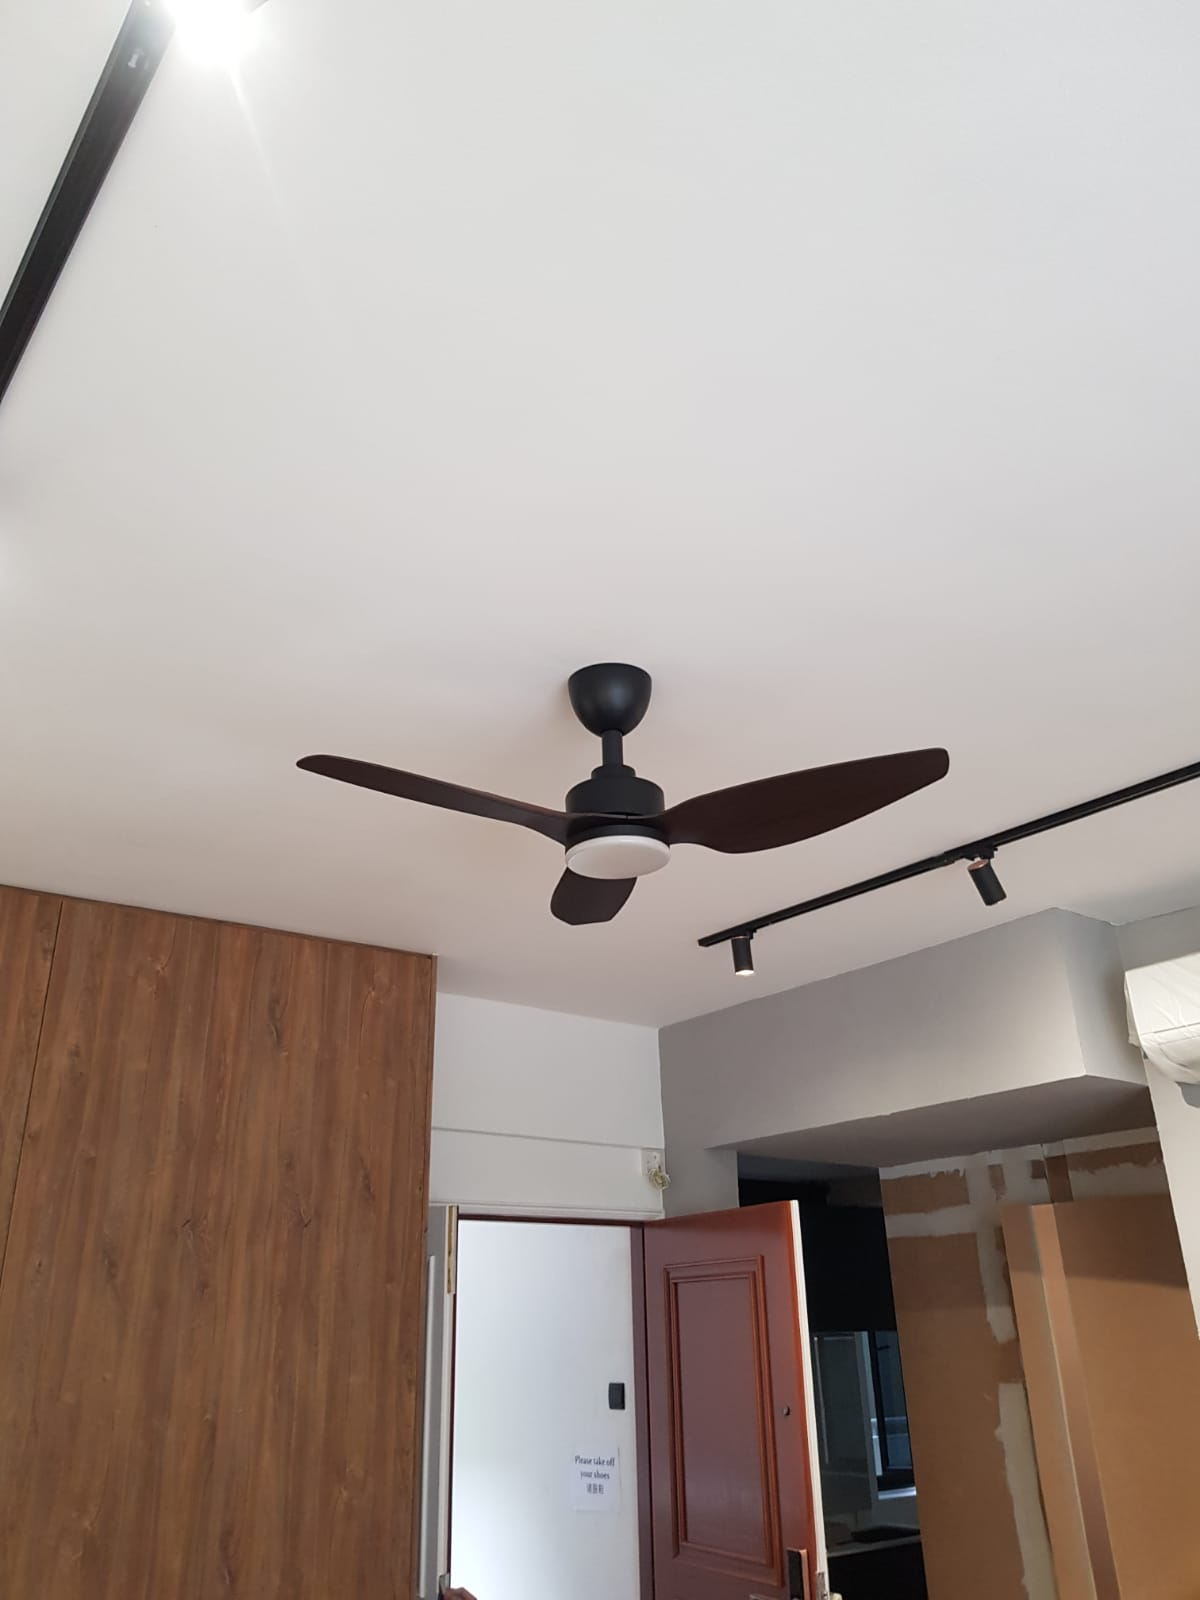 Decken DK005 Ceiling Fan in Living Room.jpg